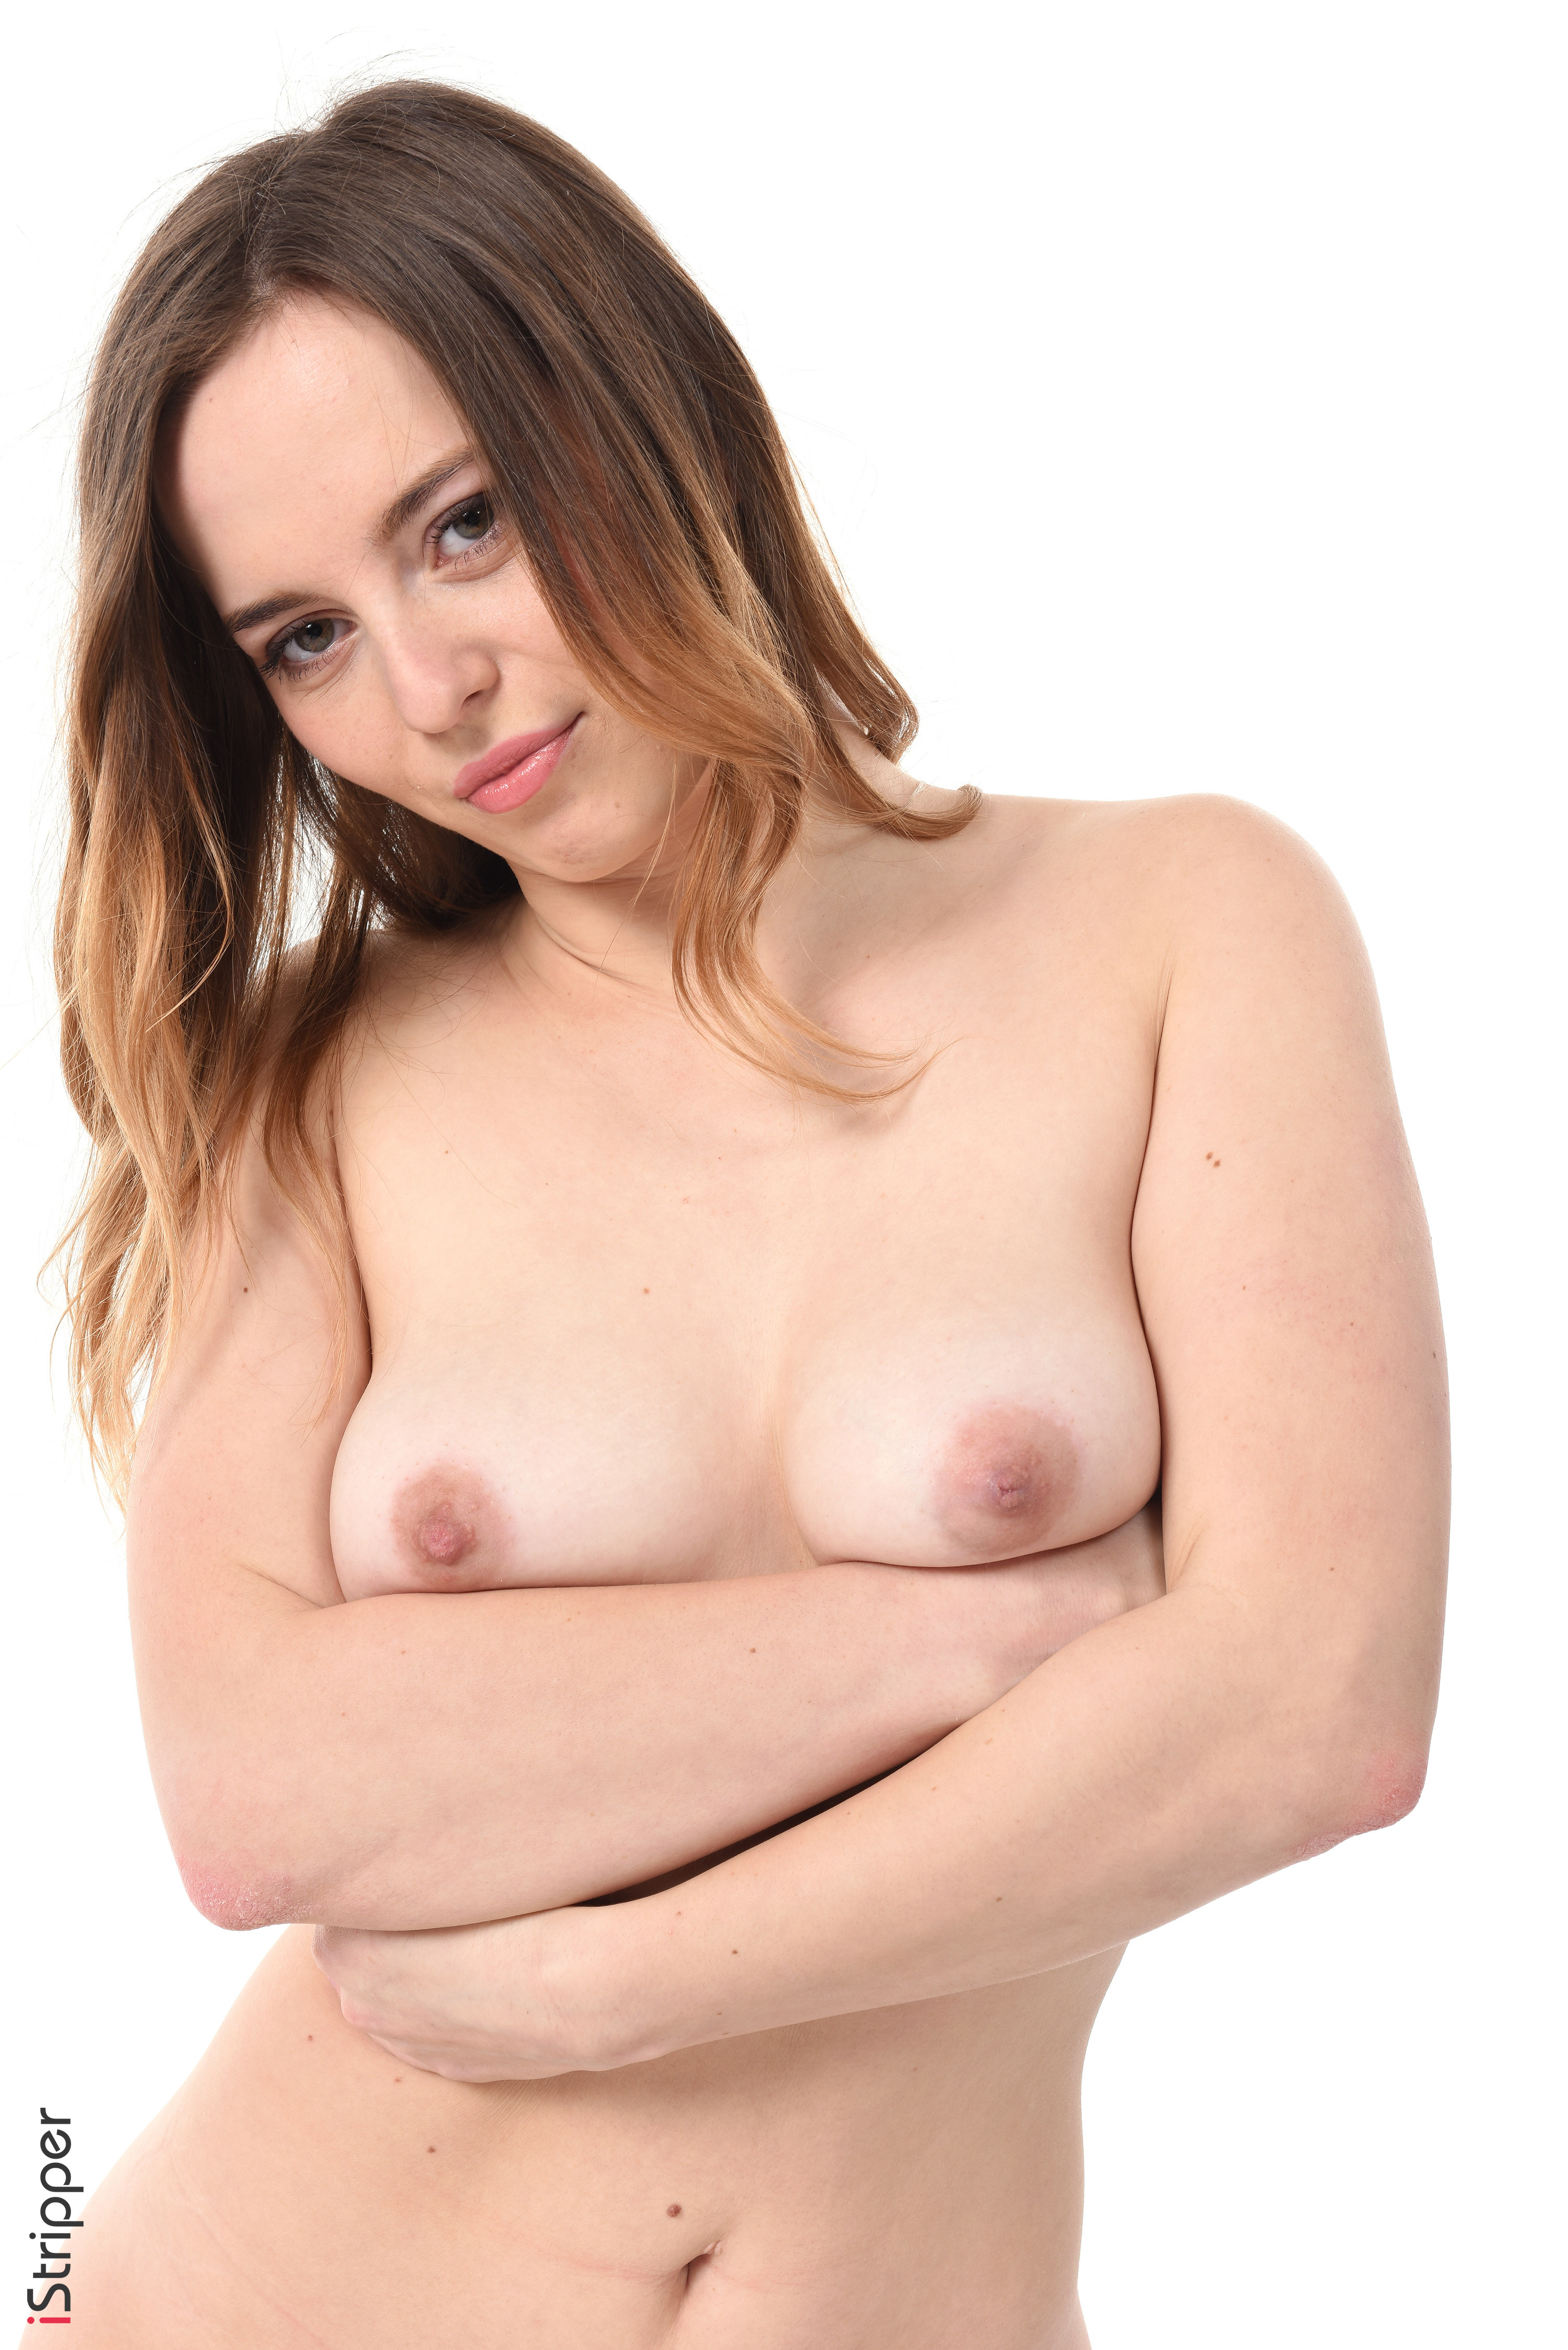 naked breast wallpaper